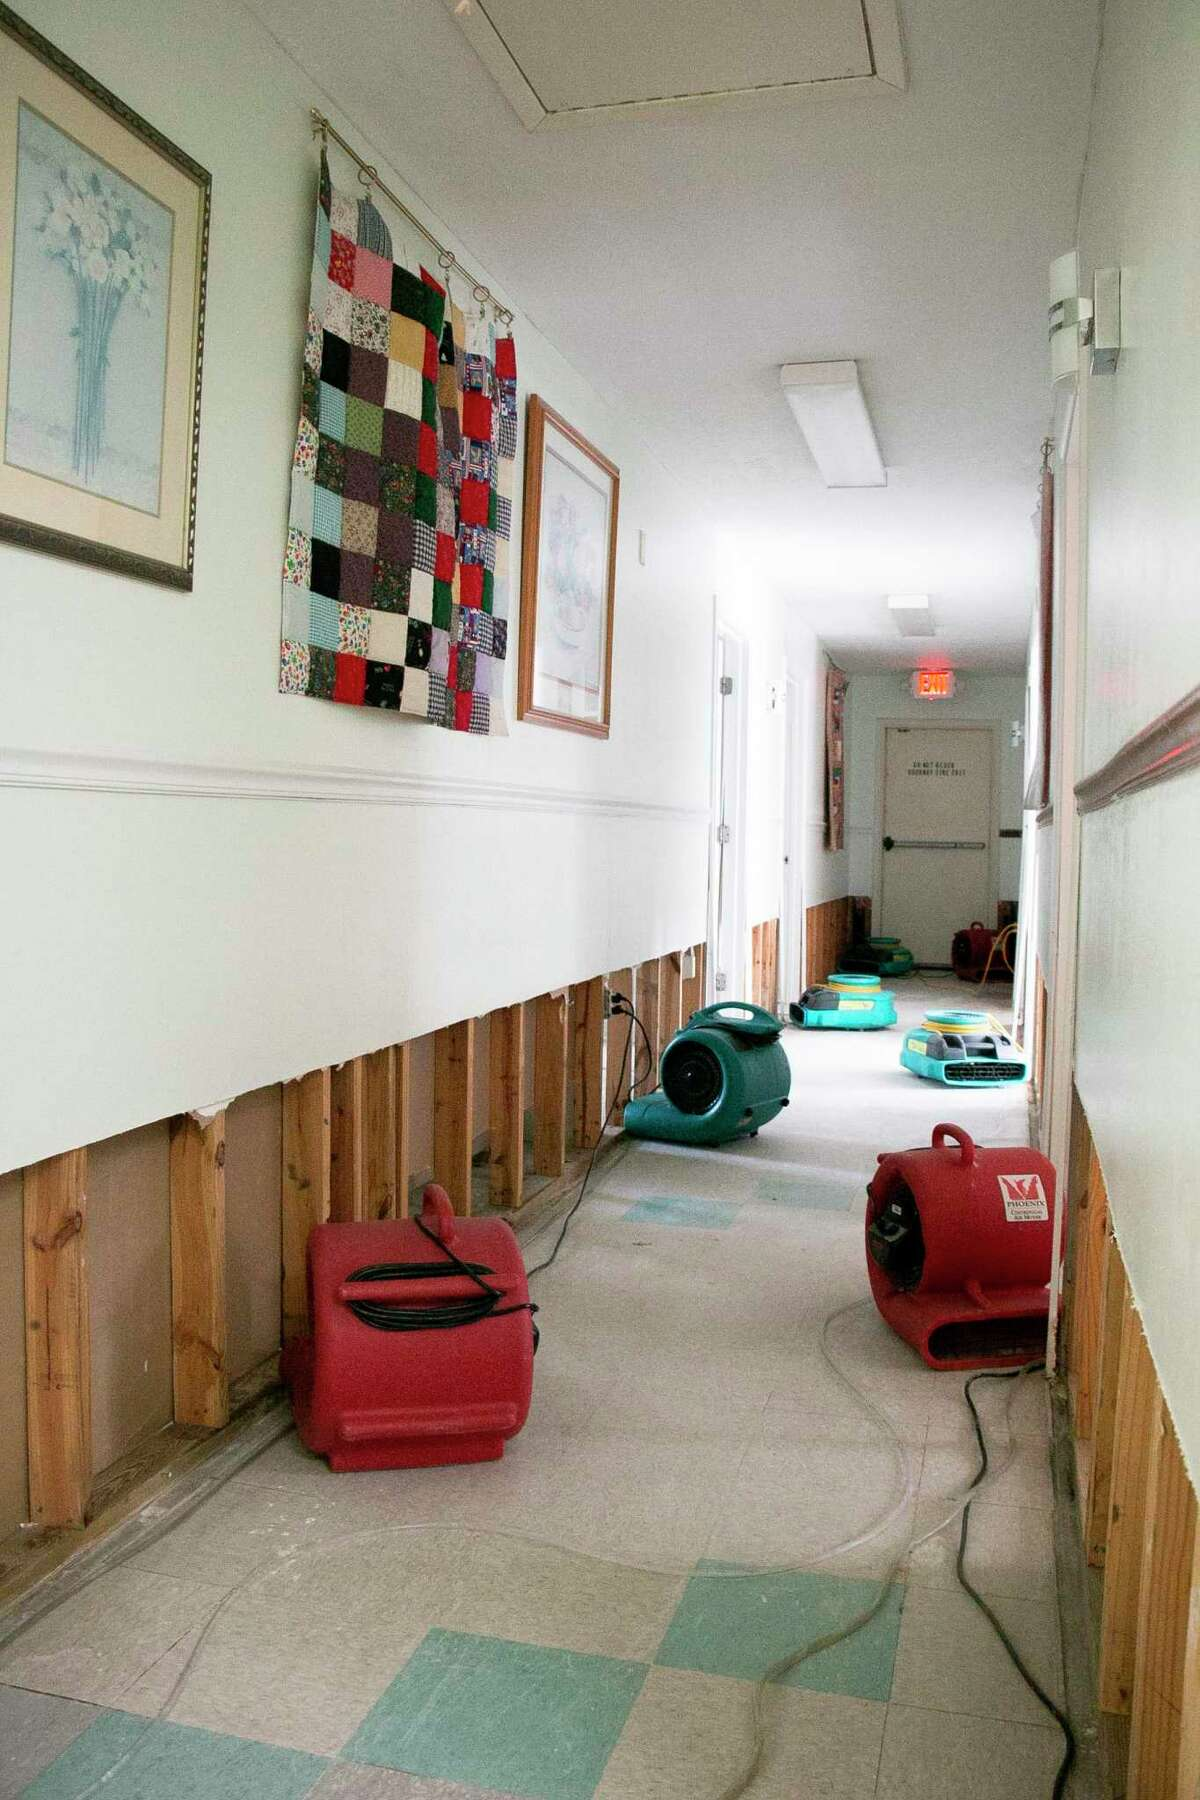 Family Time, the Humble area crisis and counseling center for domestic violence victims, had about three inches of flooding in their shelter on Thursday from Tropical Storm Imelda.